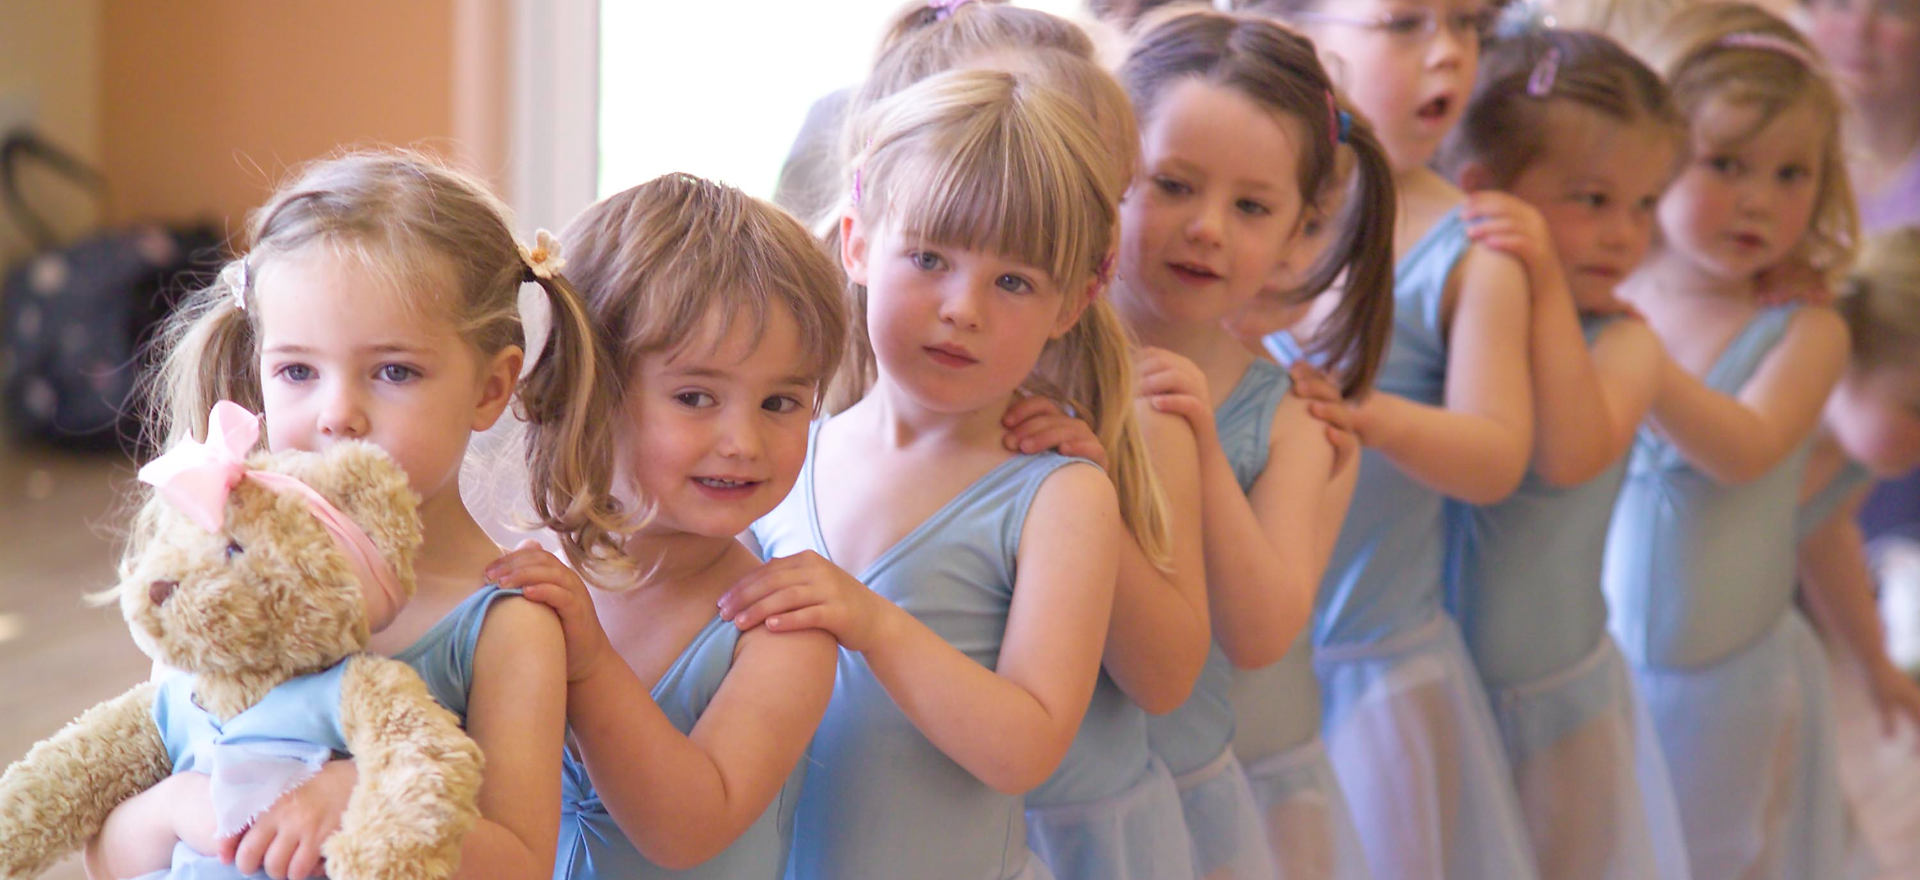 Classes for the budding ballerina